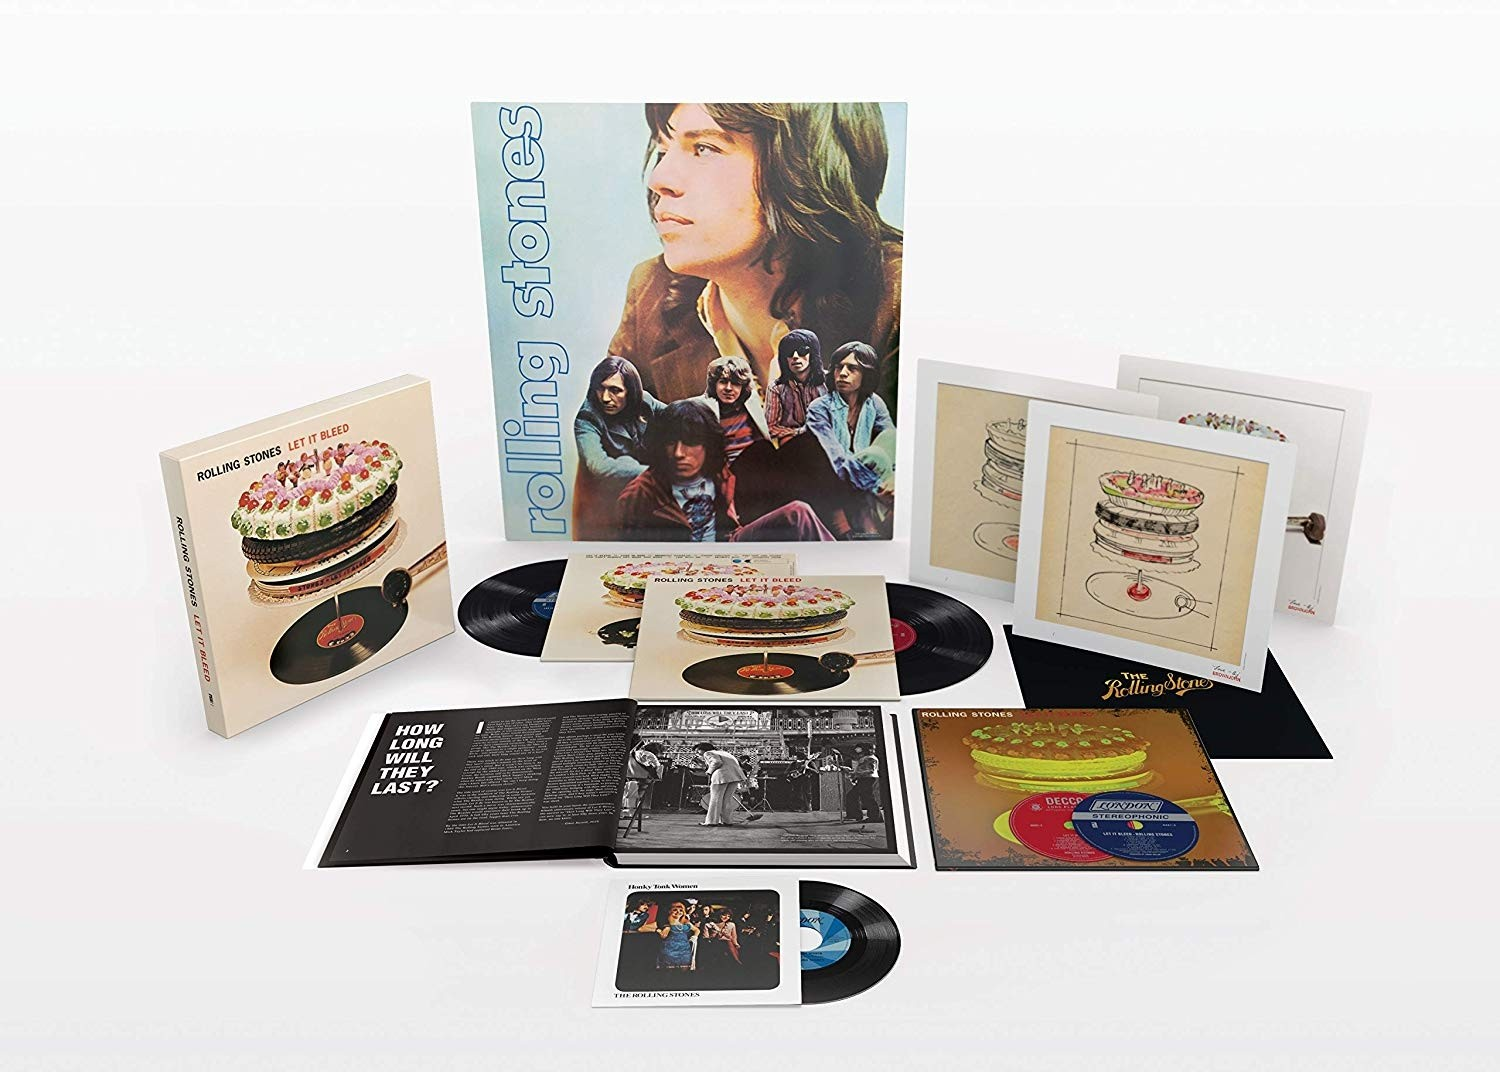 The Rolling Stones - Let It Bleed Deluxe (50th Anniversary) Boxset